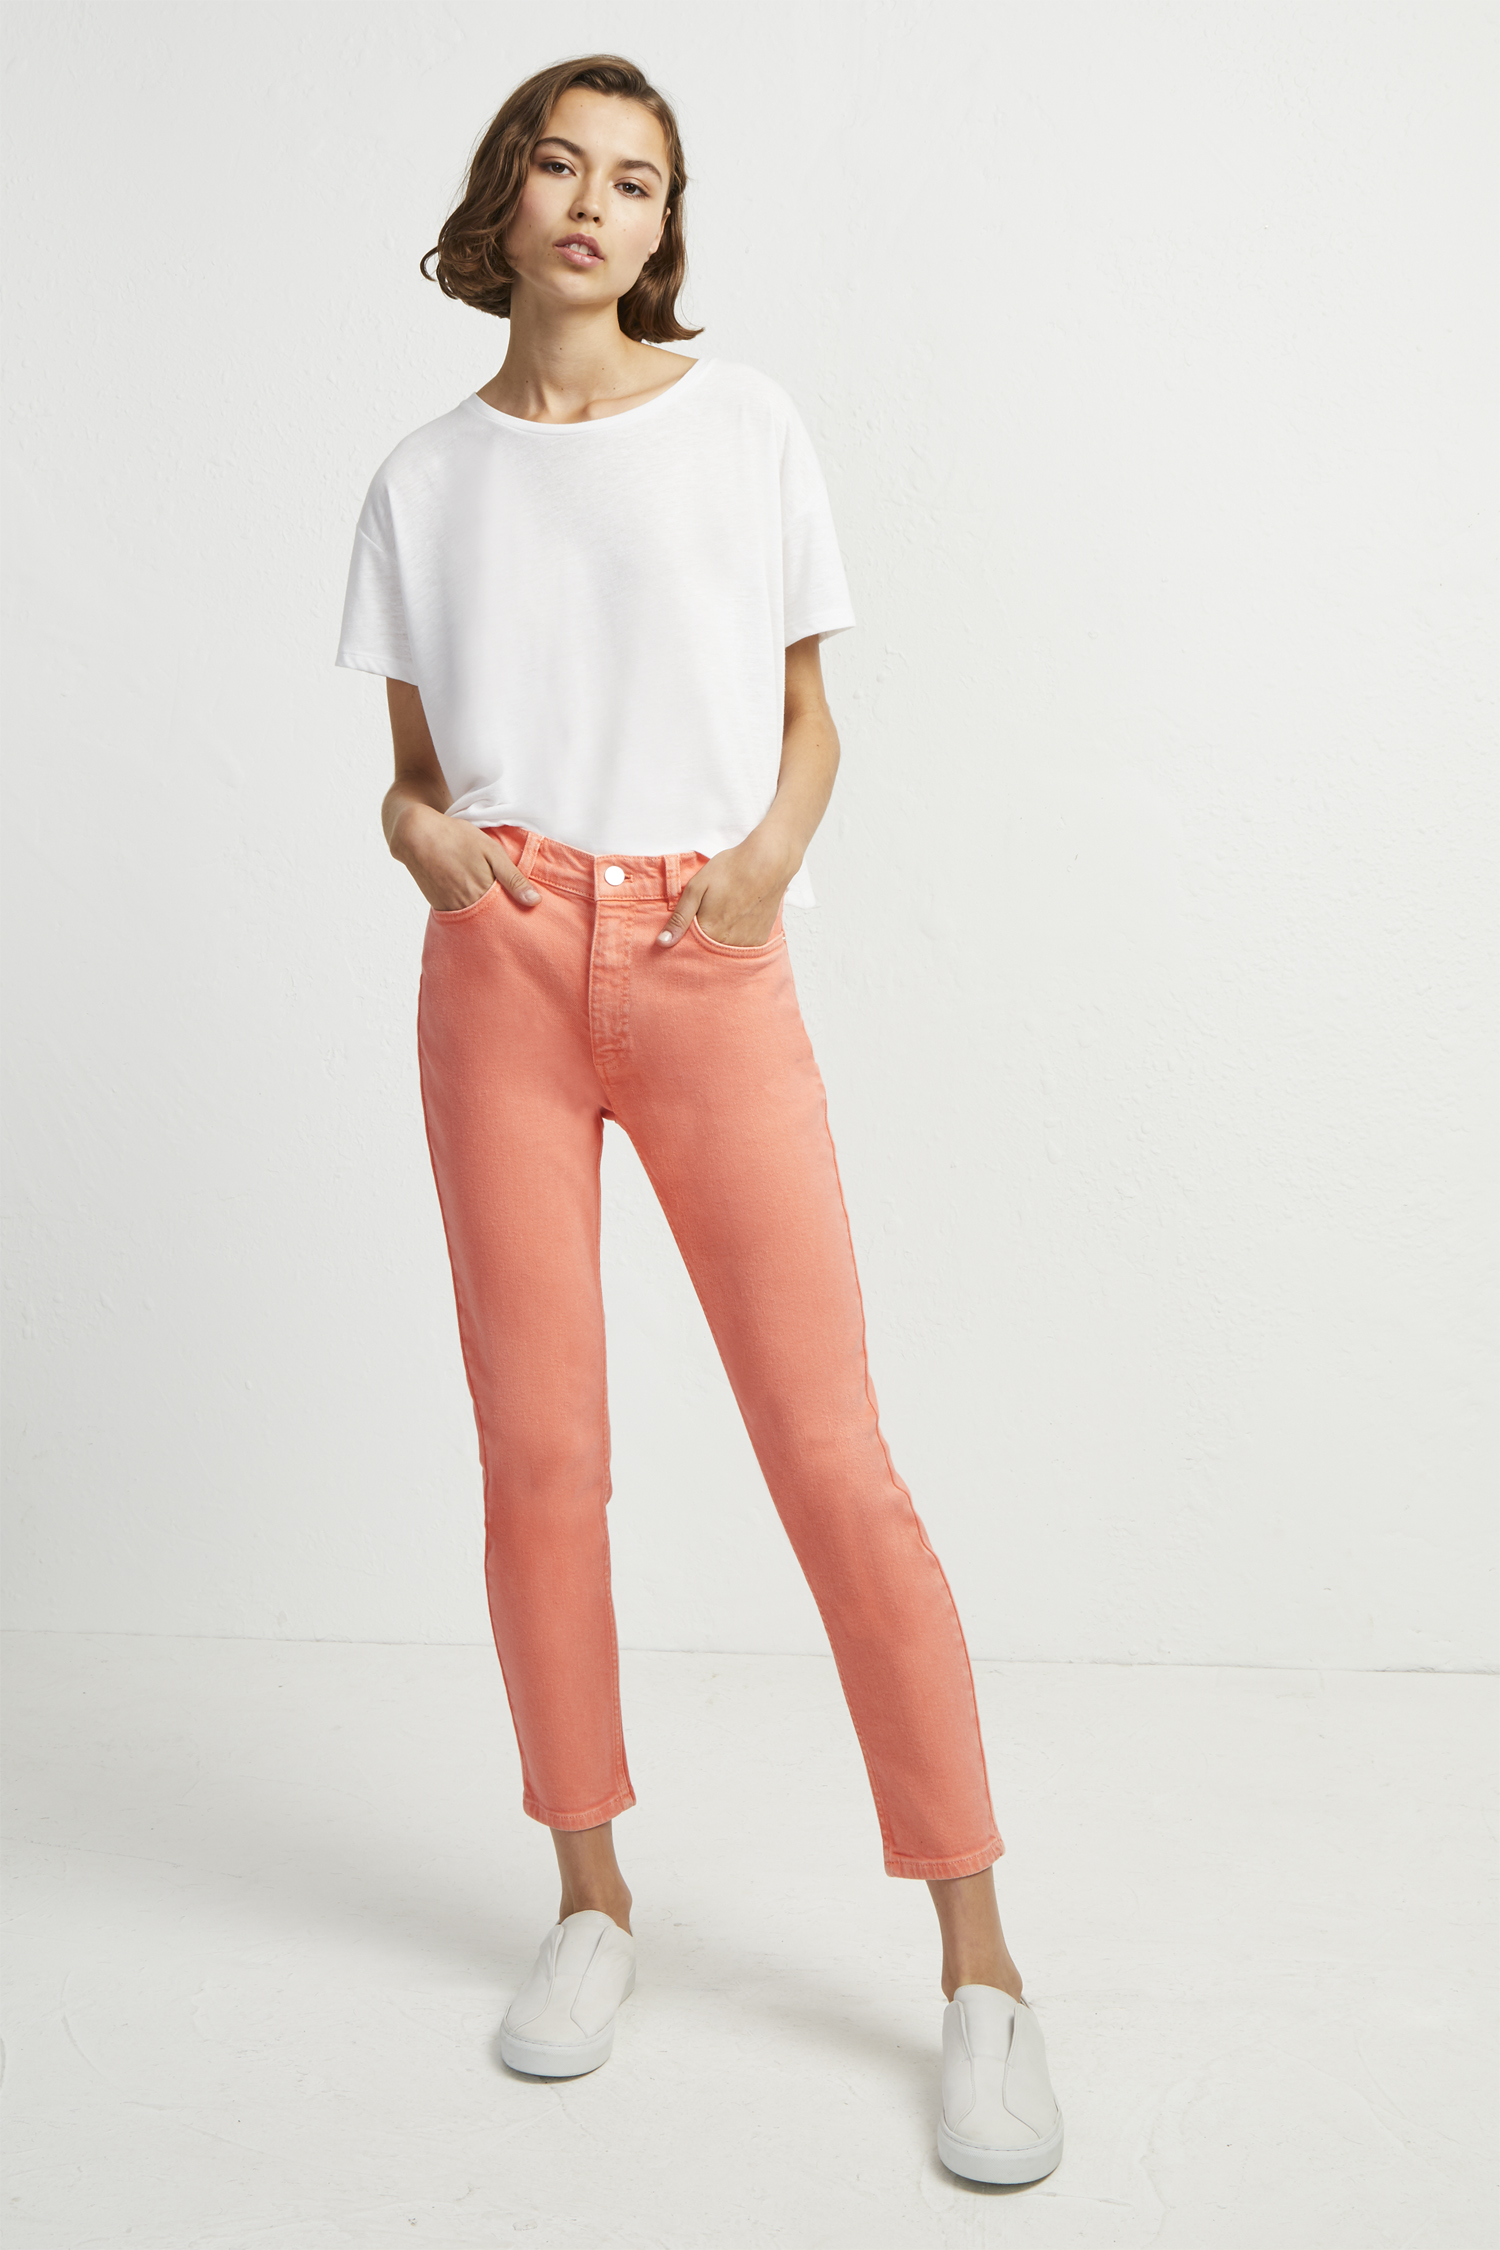 Antique Dye Ankle Grazer Skinny Jeans - coral sands